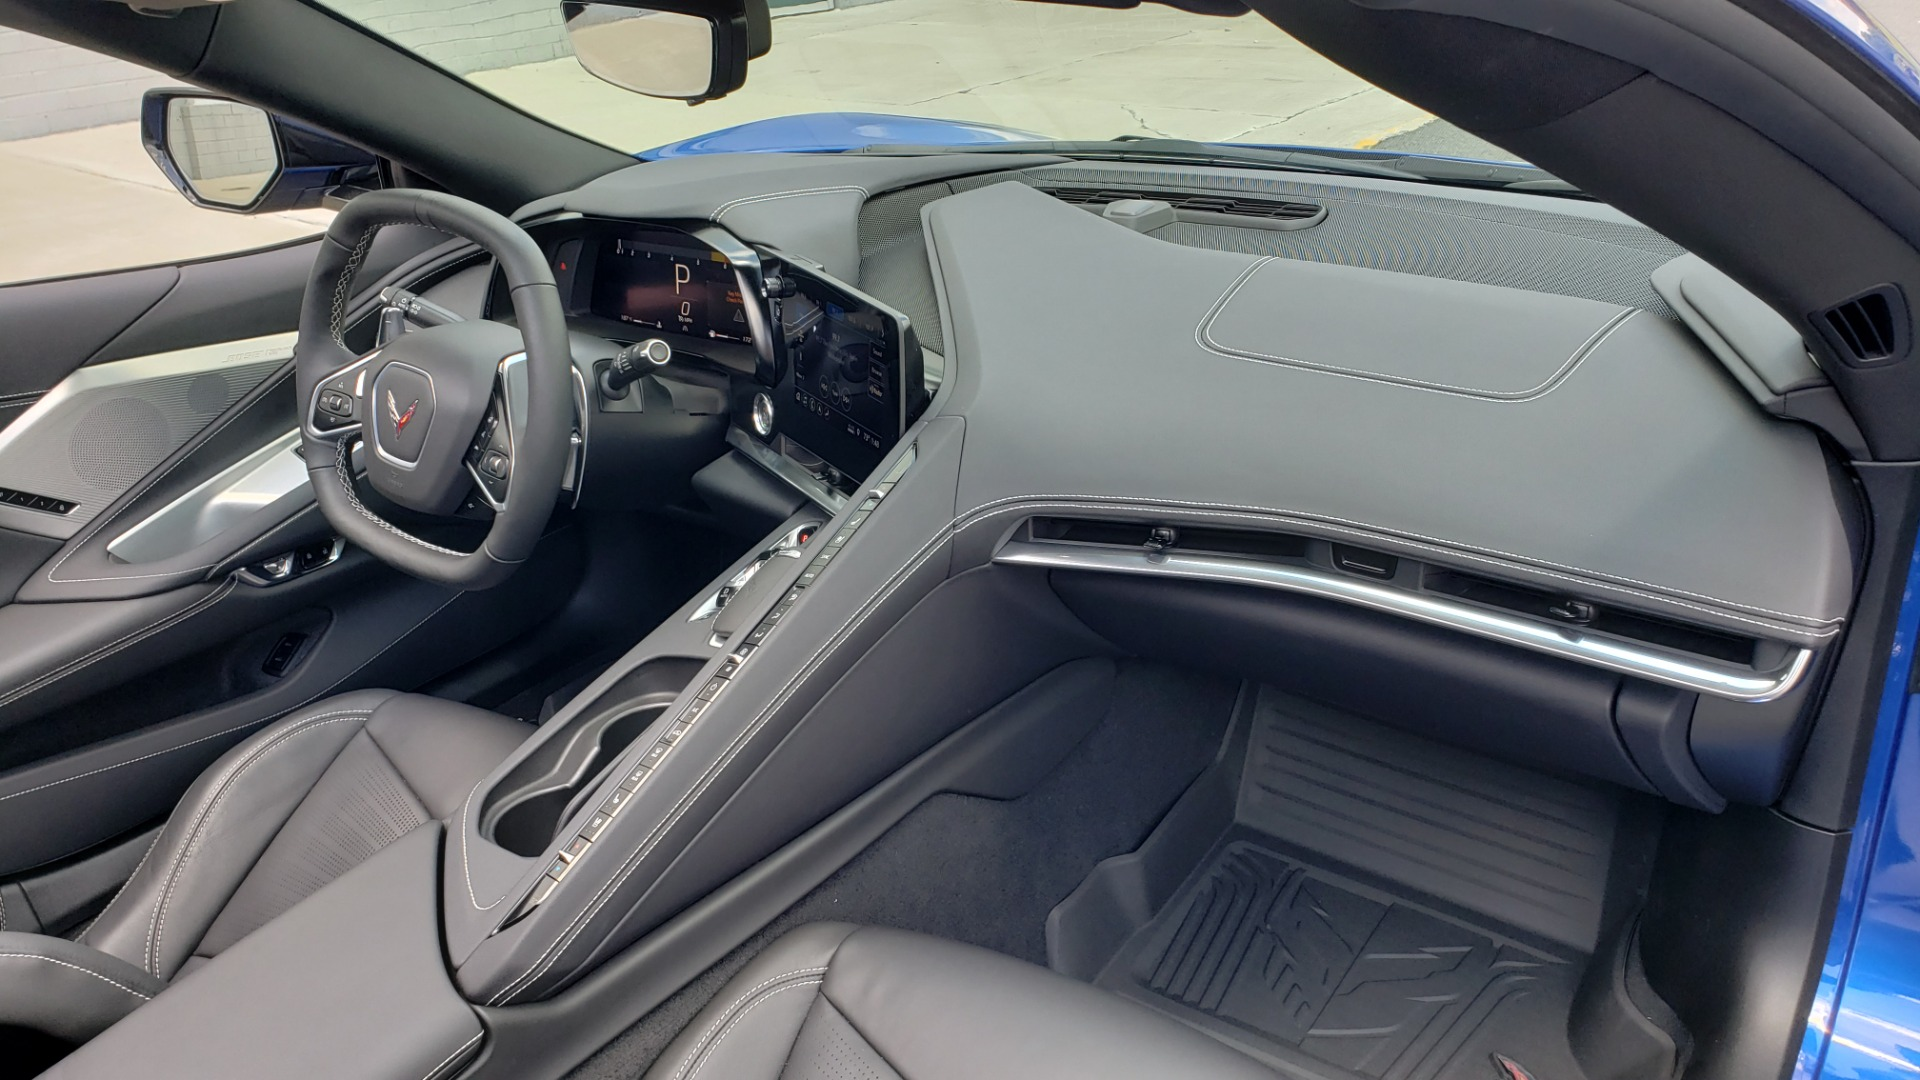 Used 2020 Chevrolet CORVETTE C8 STINGRAY COUPE 2LT / PERF & Z51 PKG / NAV / BOSE / 8-SPD AUTO / REARVIEW for sale Sold at Formula Imports in Charlotte NC 28227 29